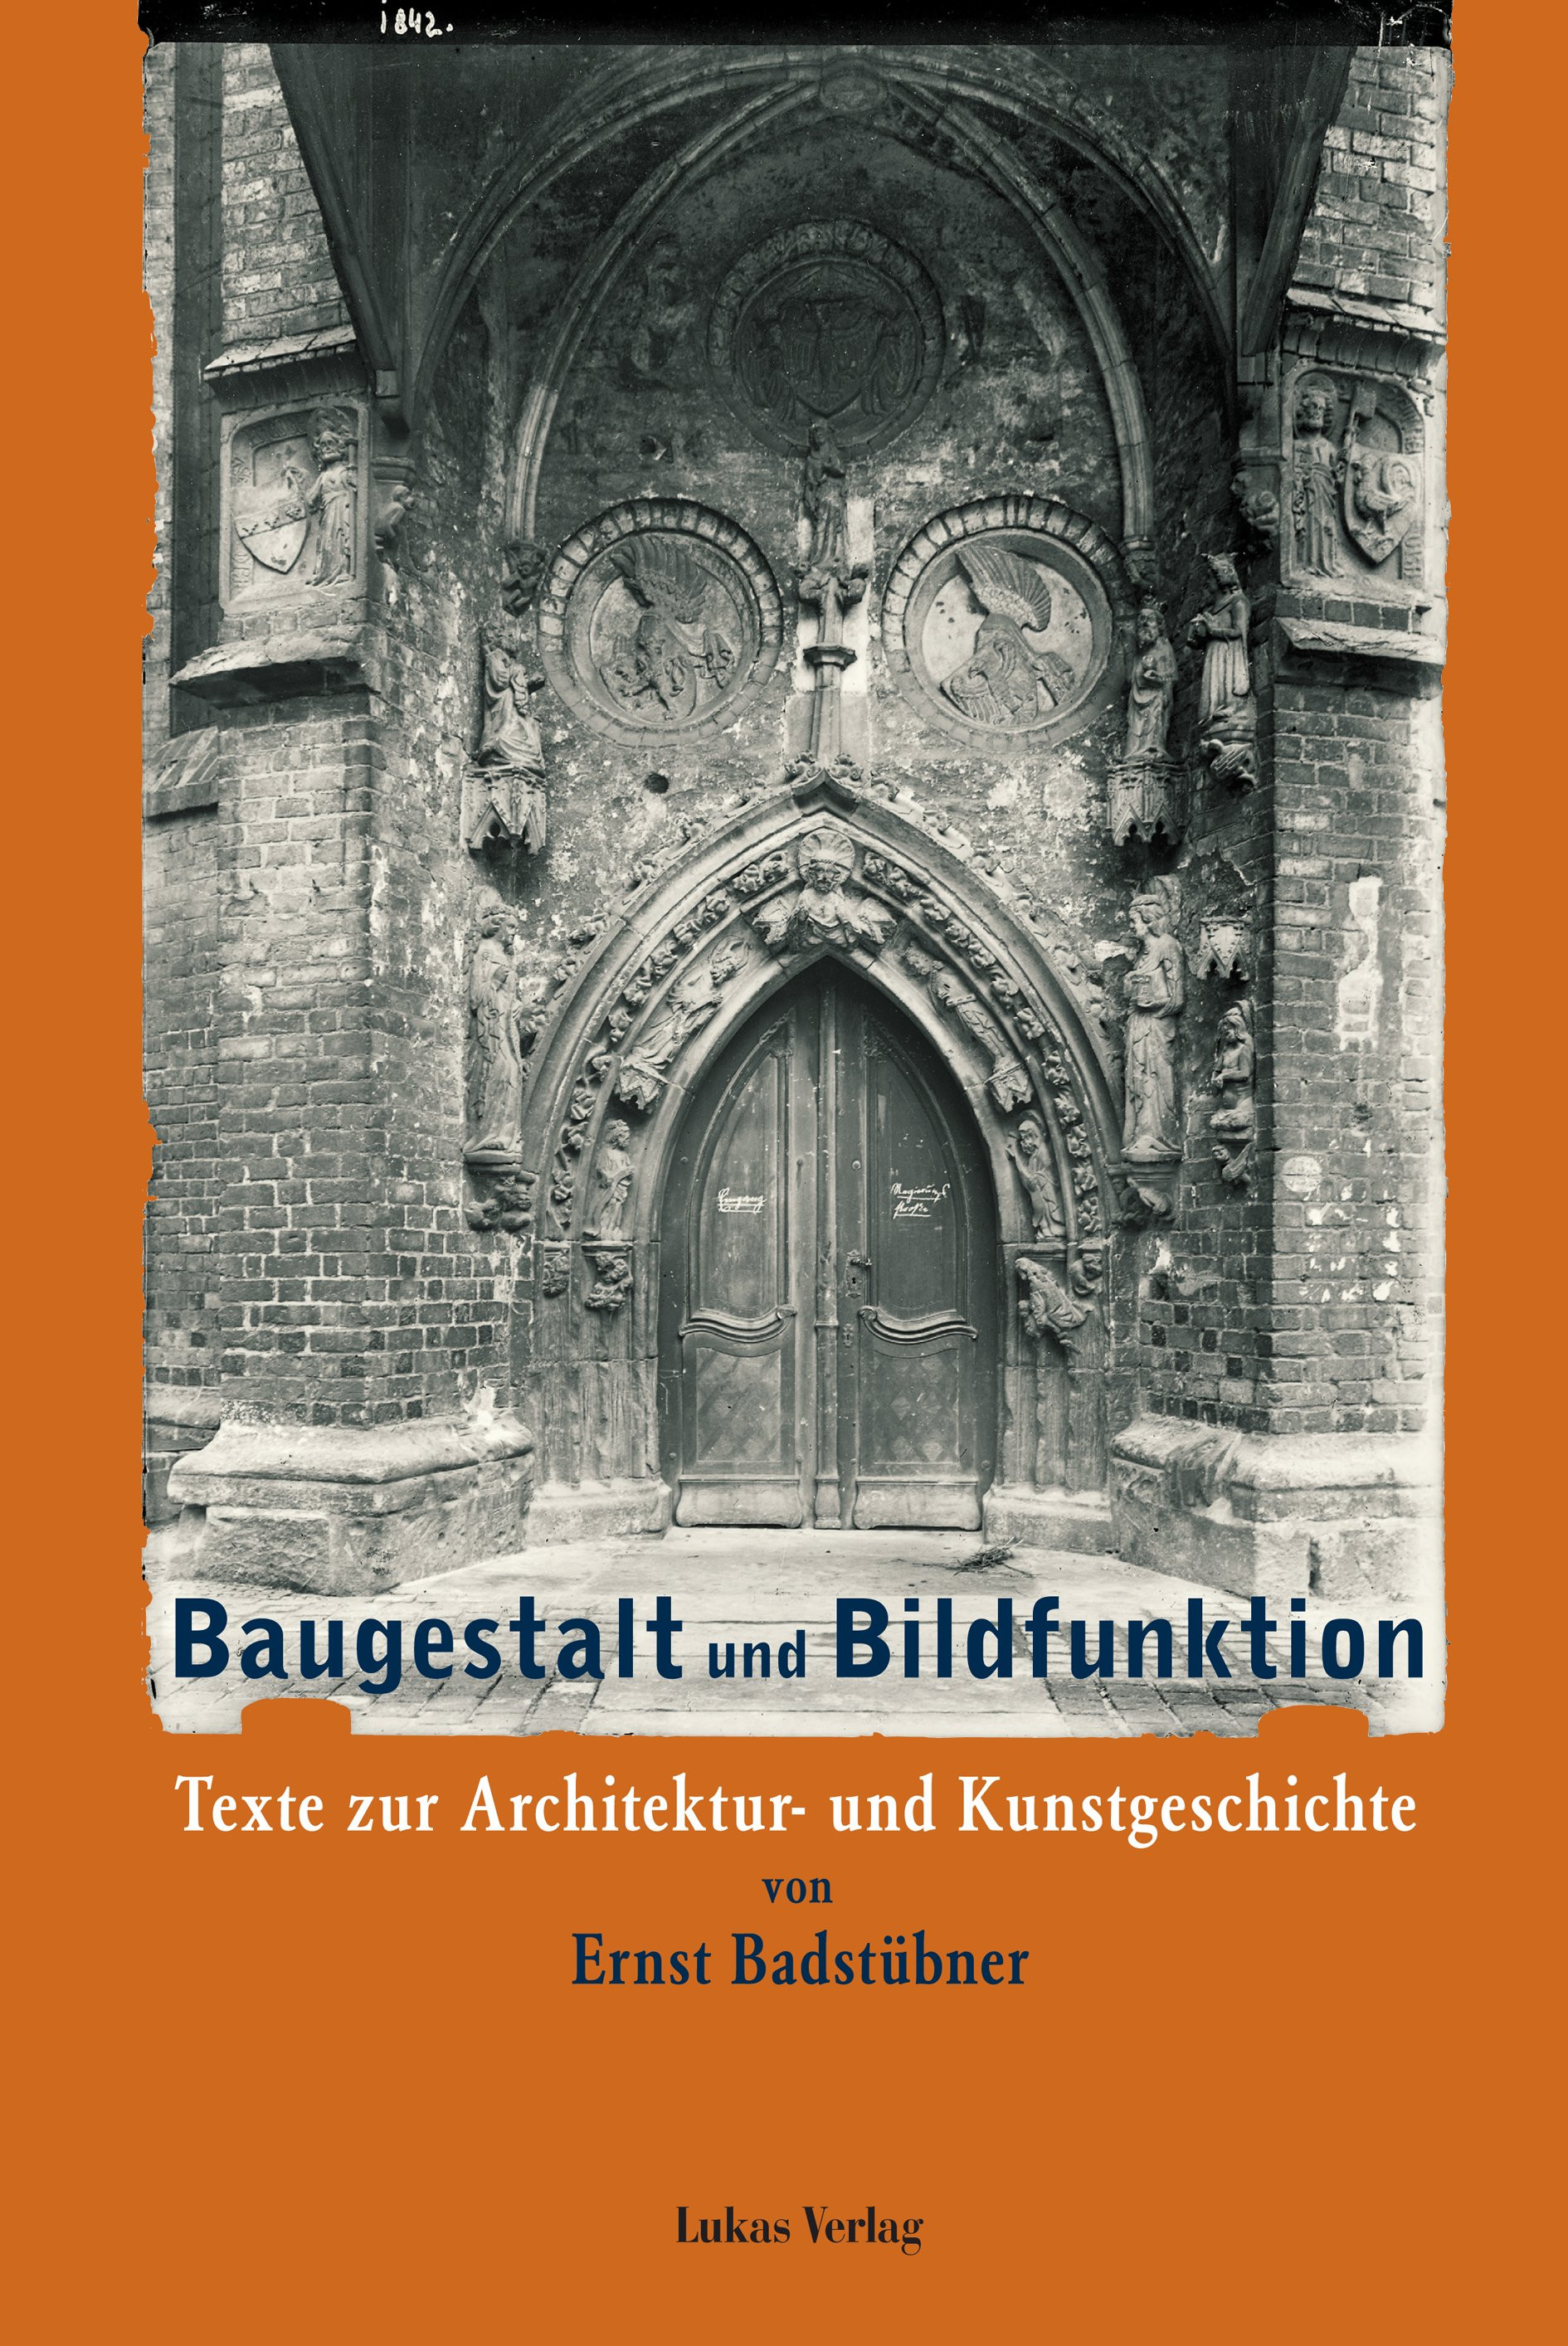 Baugestalt und Bildfunktion